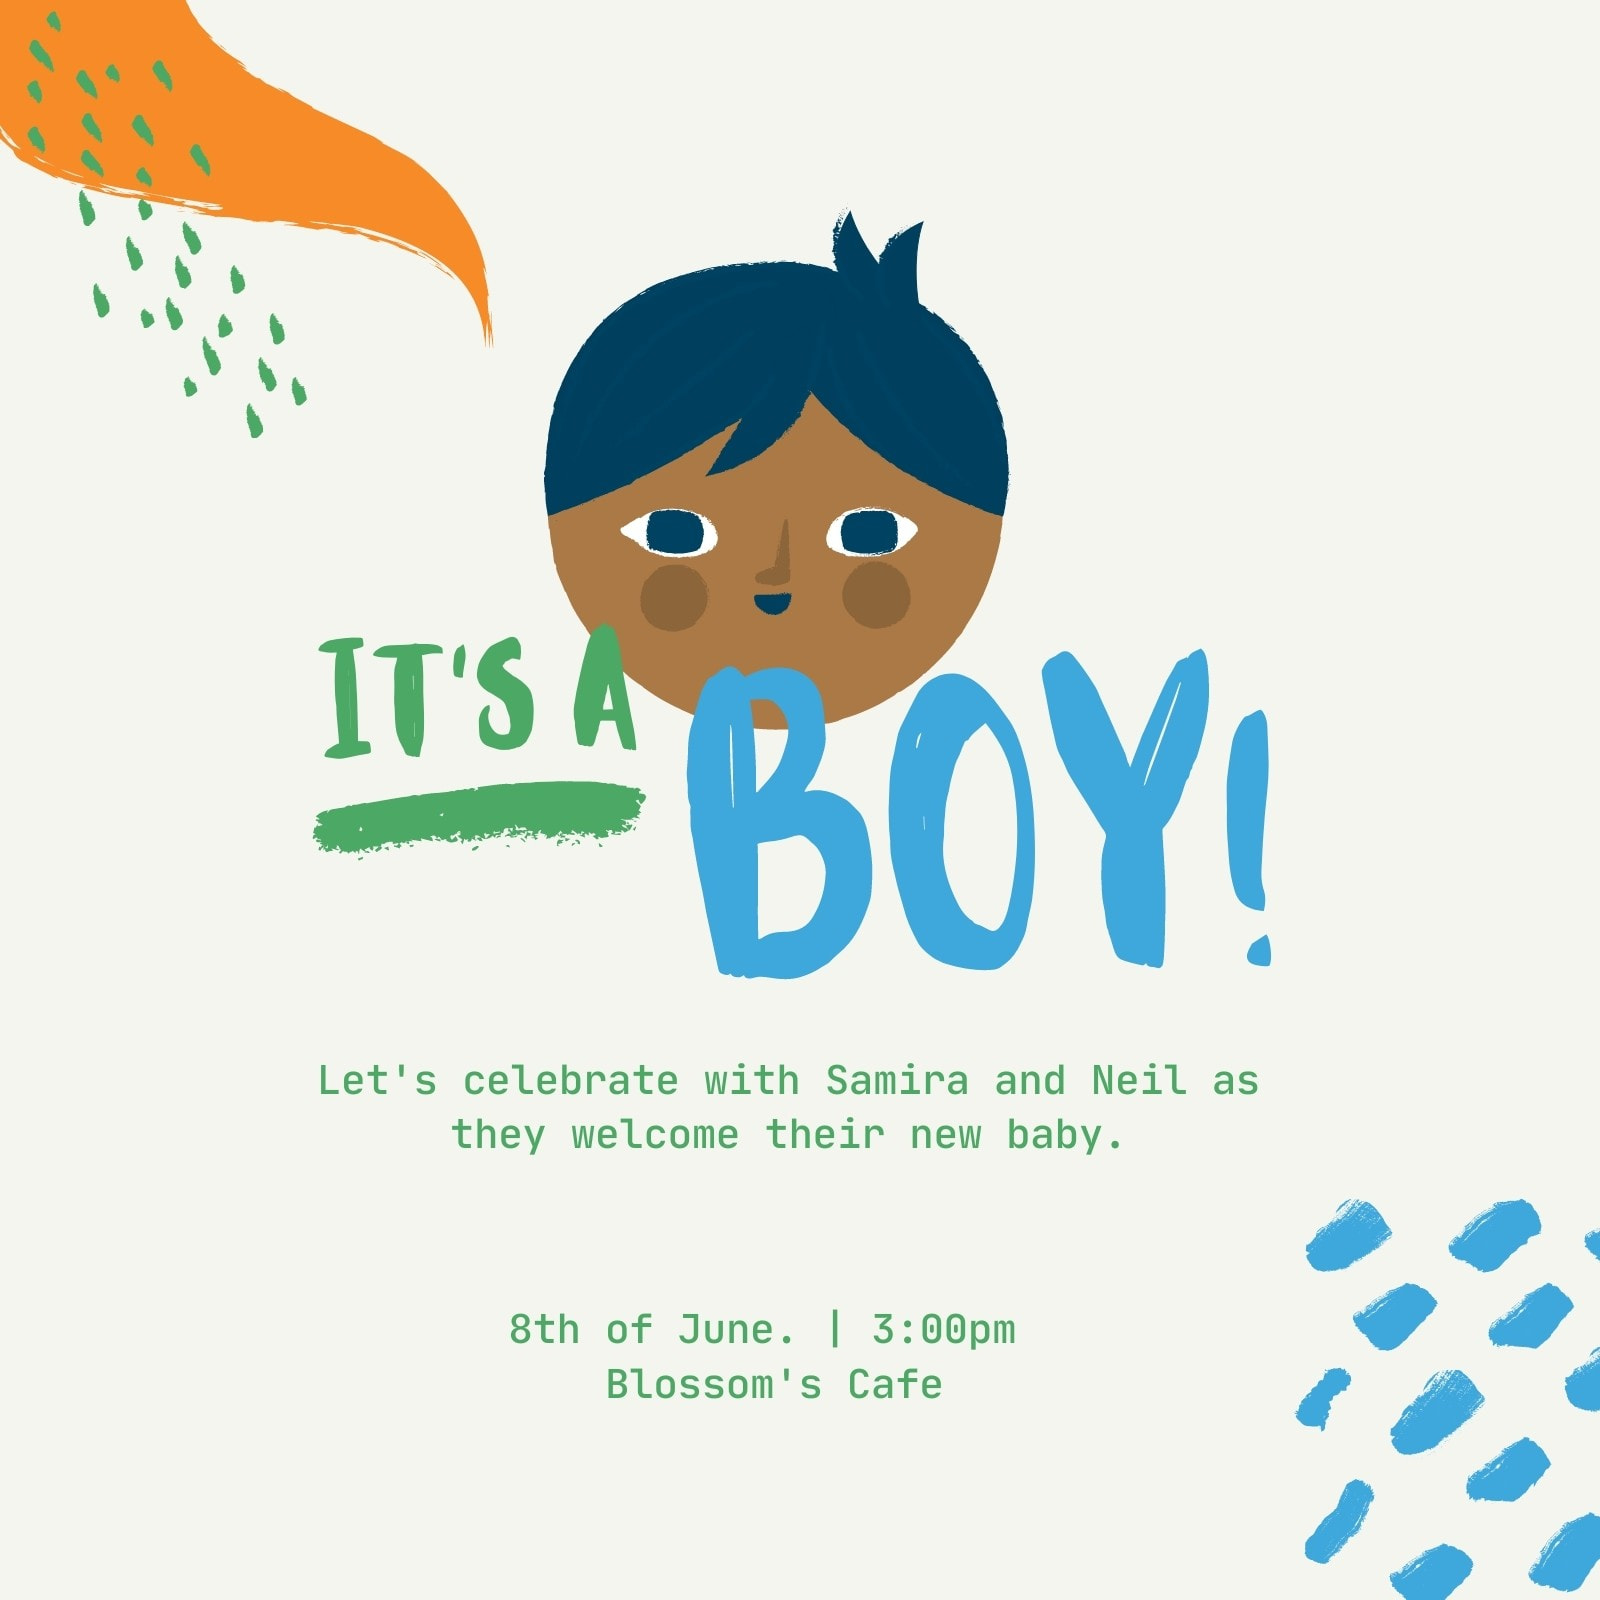 Baby shower decorating ideas don't have to be complicated. Make Your Own Baby Shower Invitation Canva